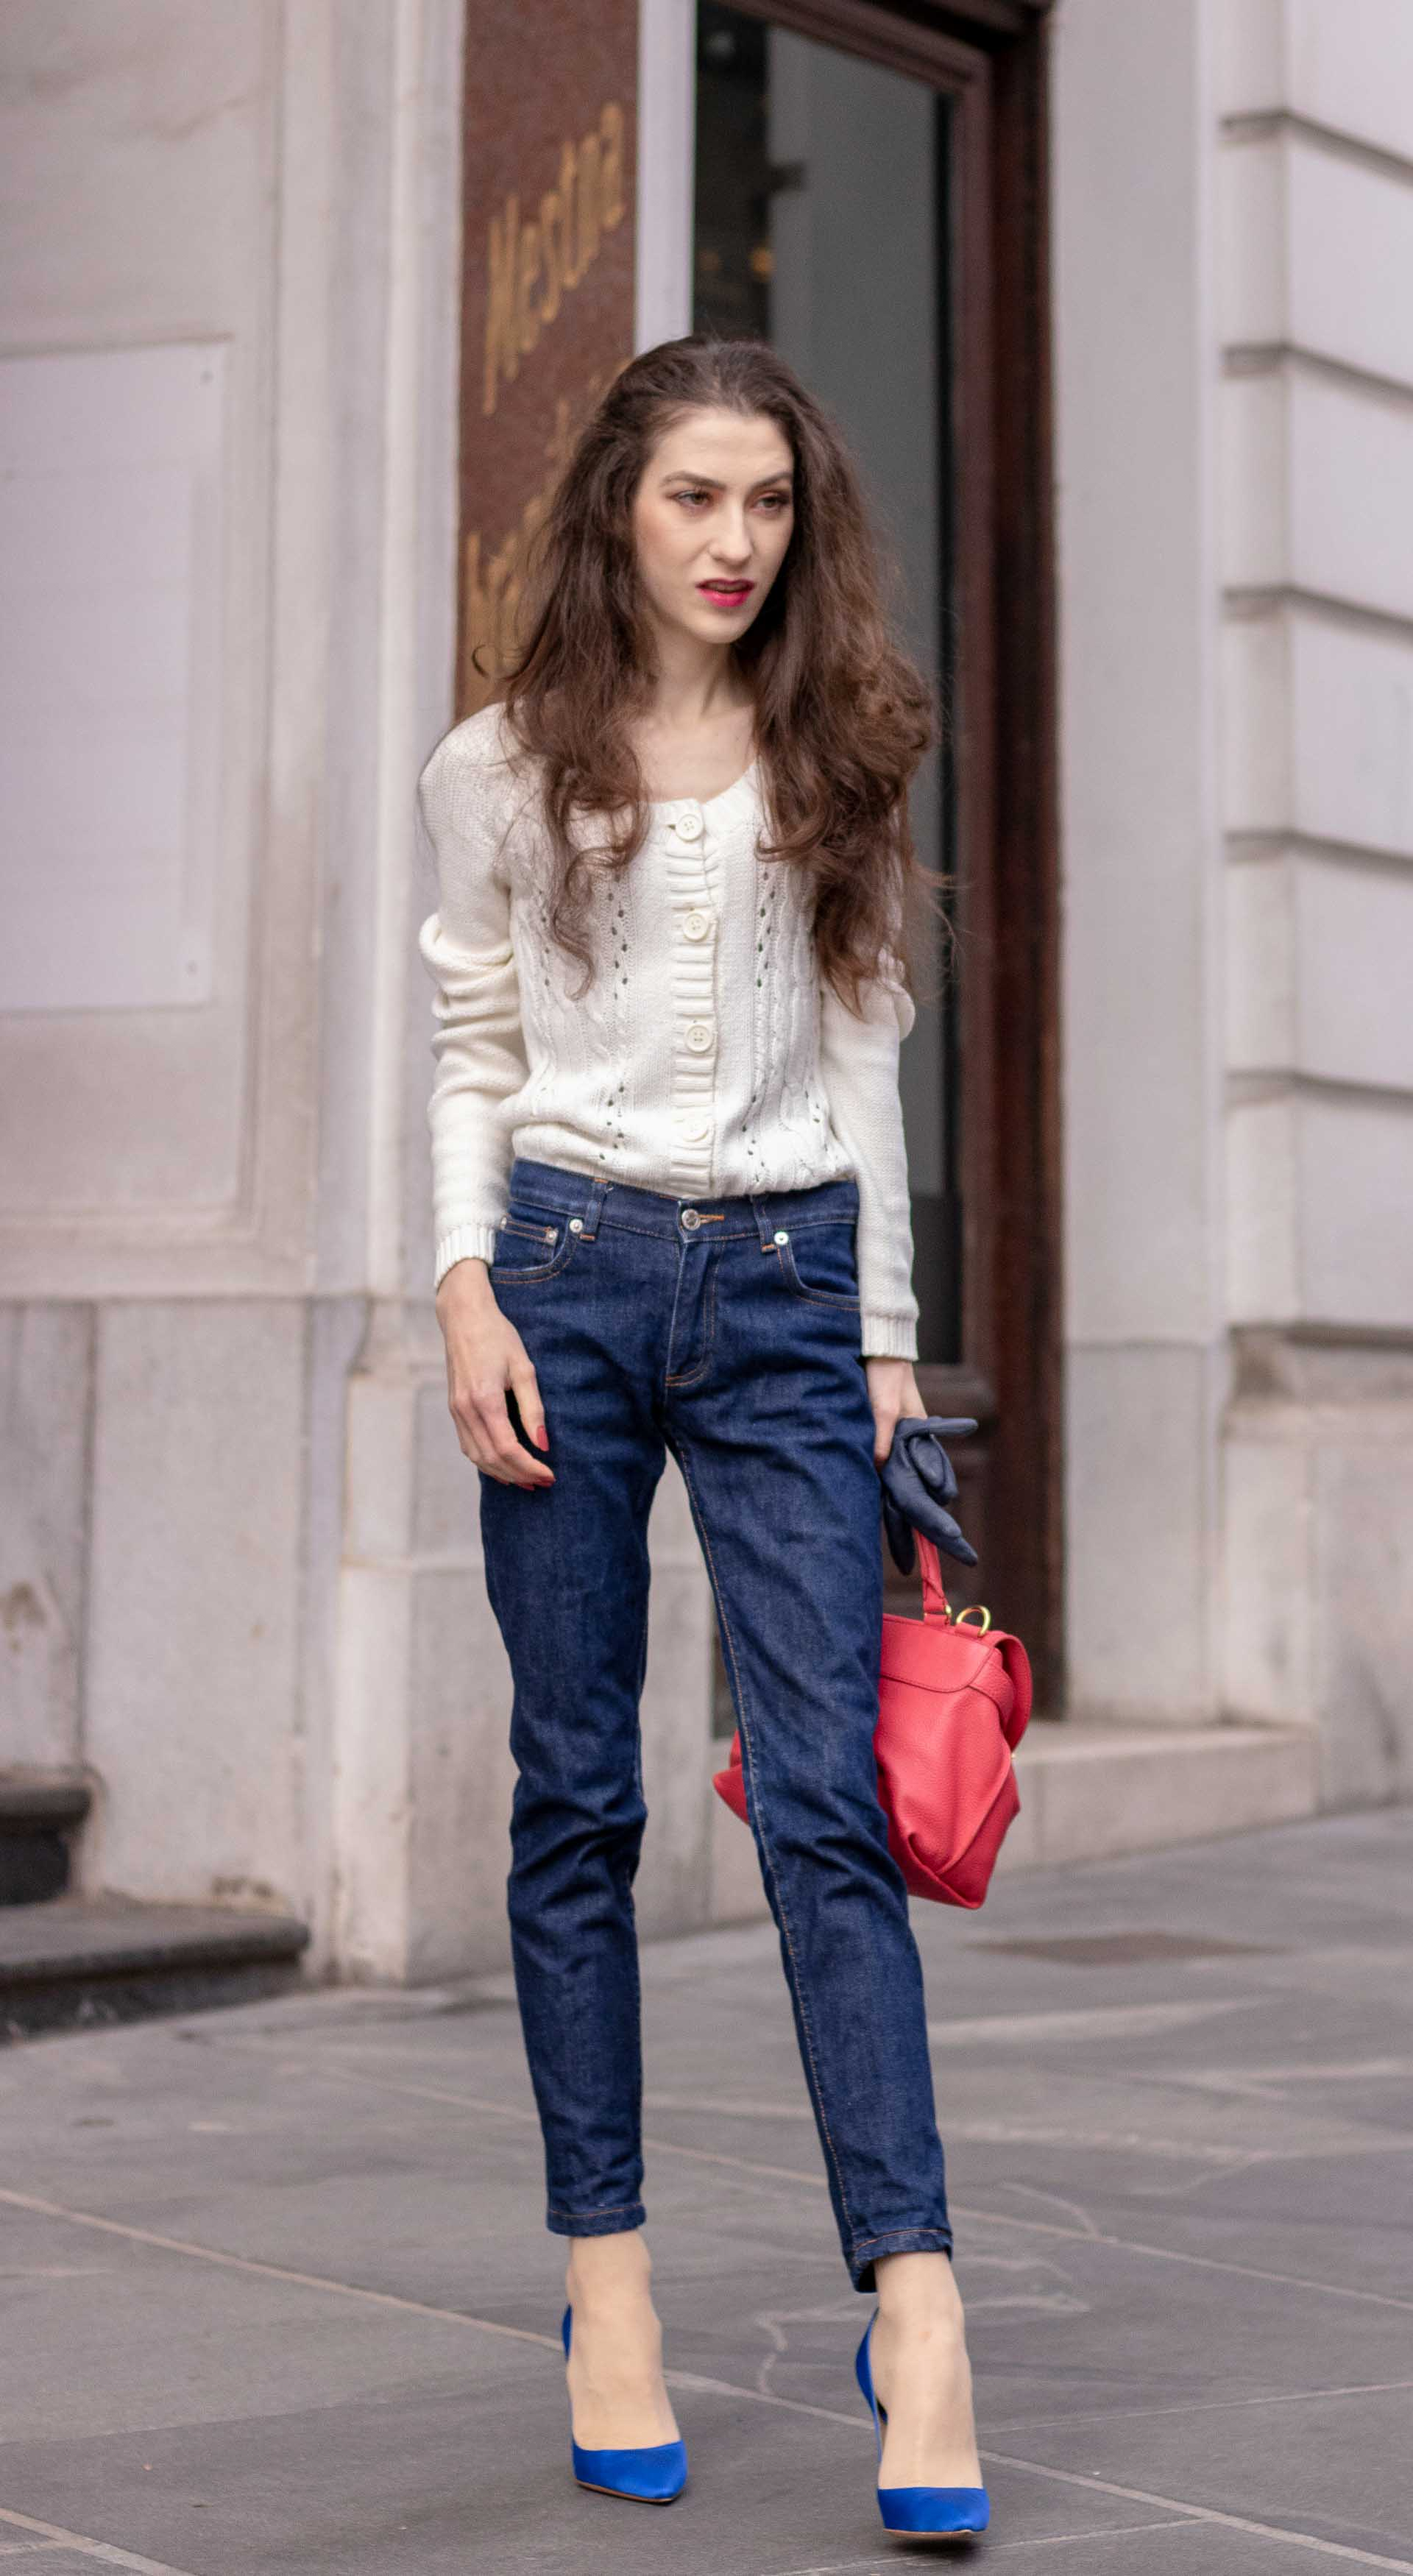 Beautiful Slovenian Fashion Blogger Veronika Lipar of Brunette from Wall dressed in white Mango cardigan tucked into dark blue denim jeans from a.p.c., blue Gianvito Rossi pumps, pink top handle bag in autumn